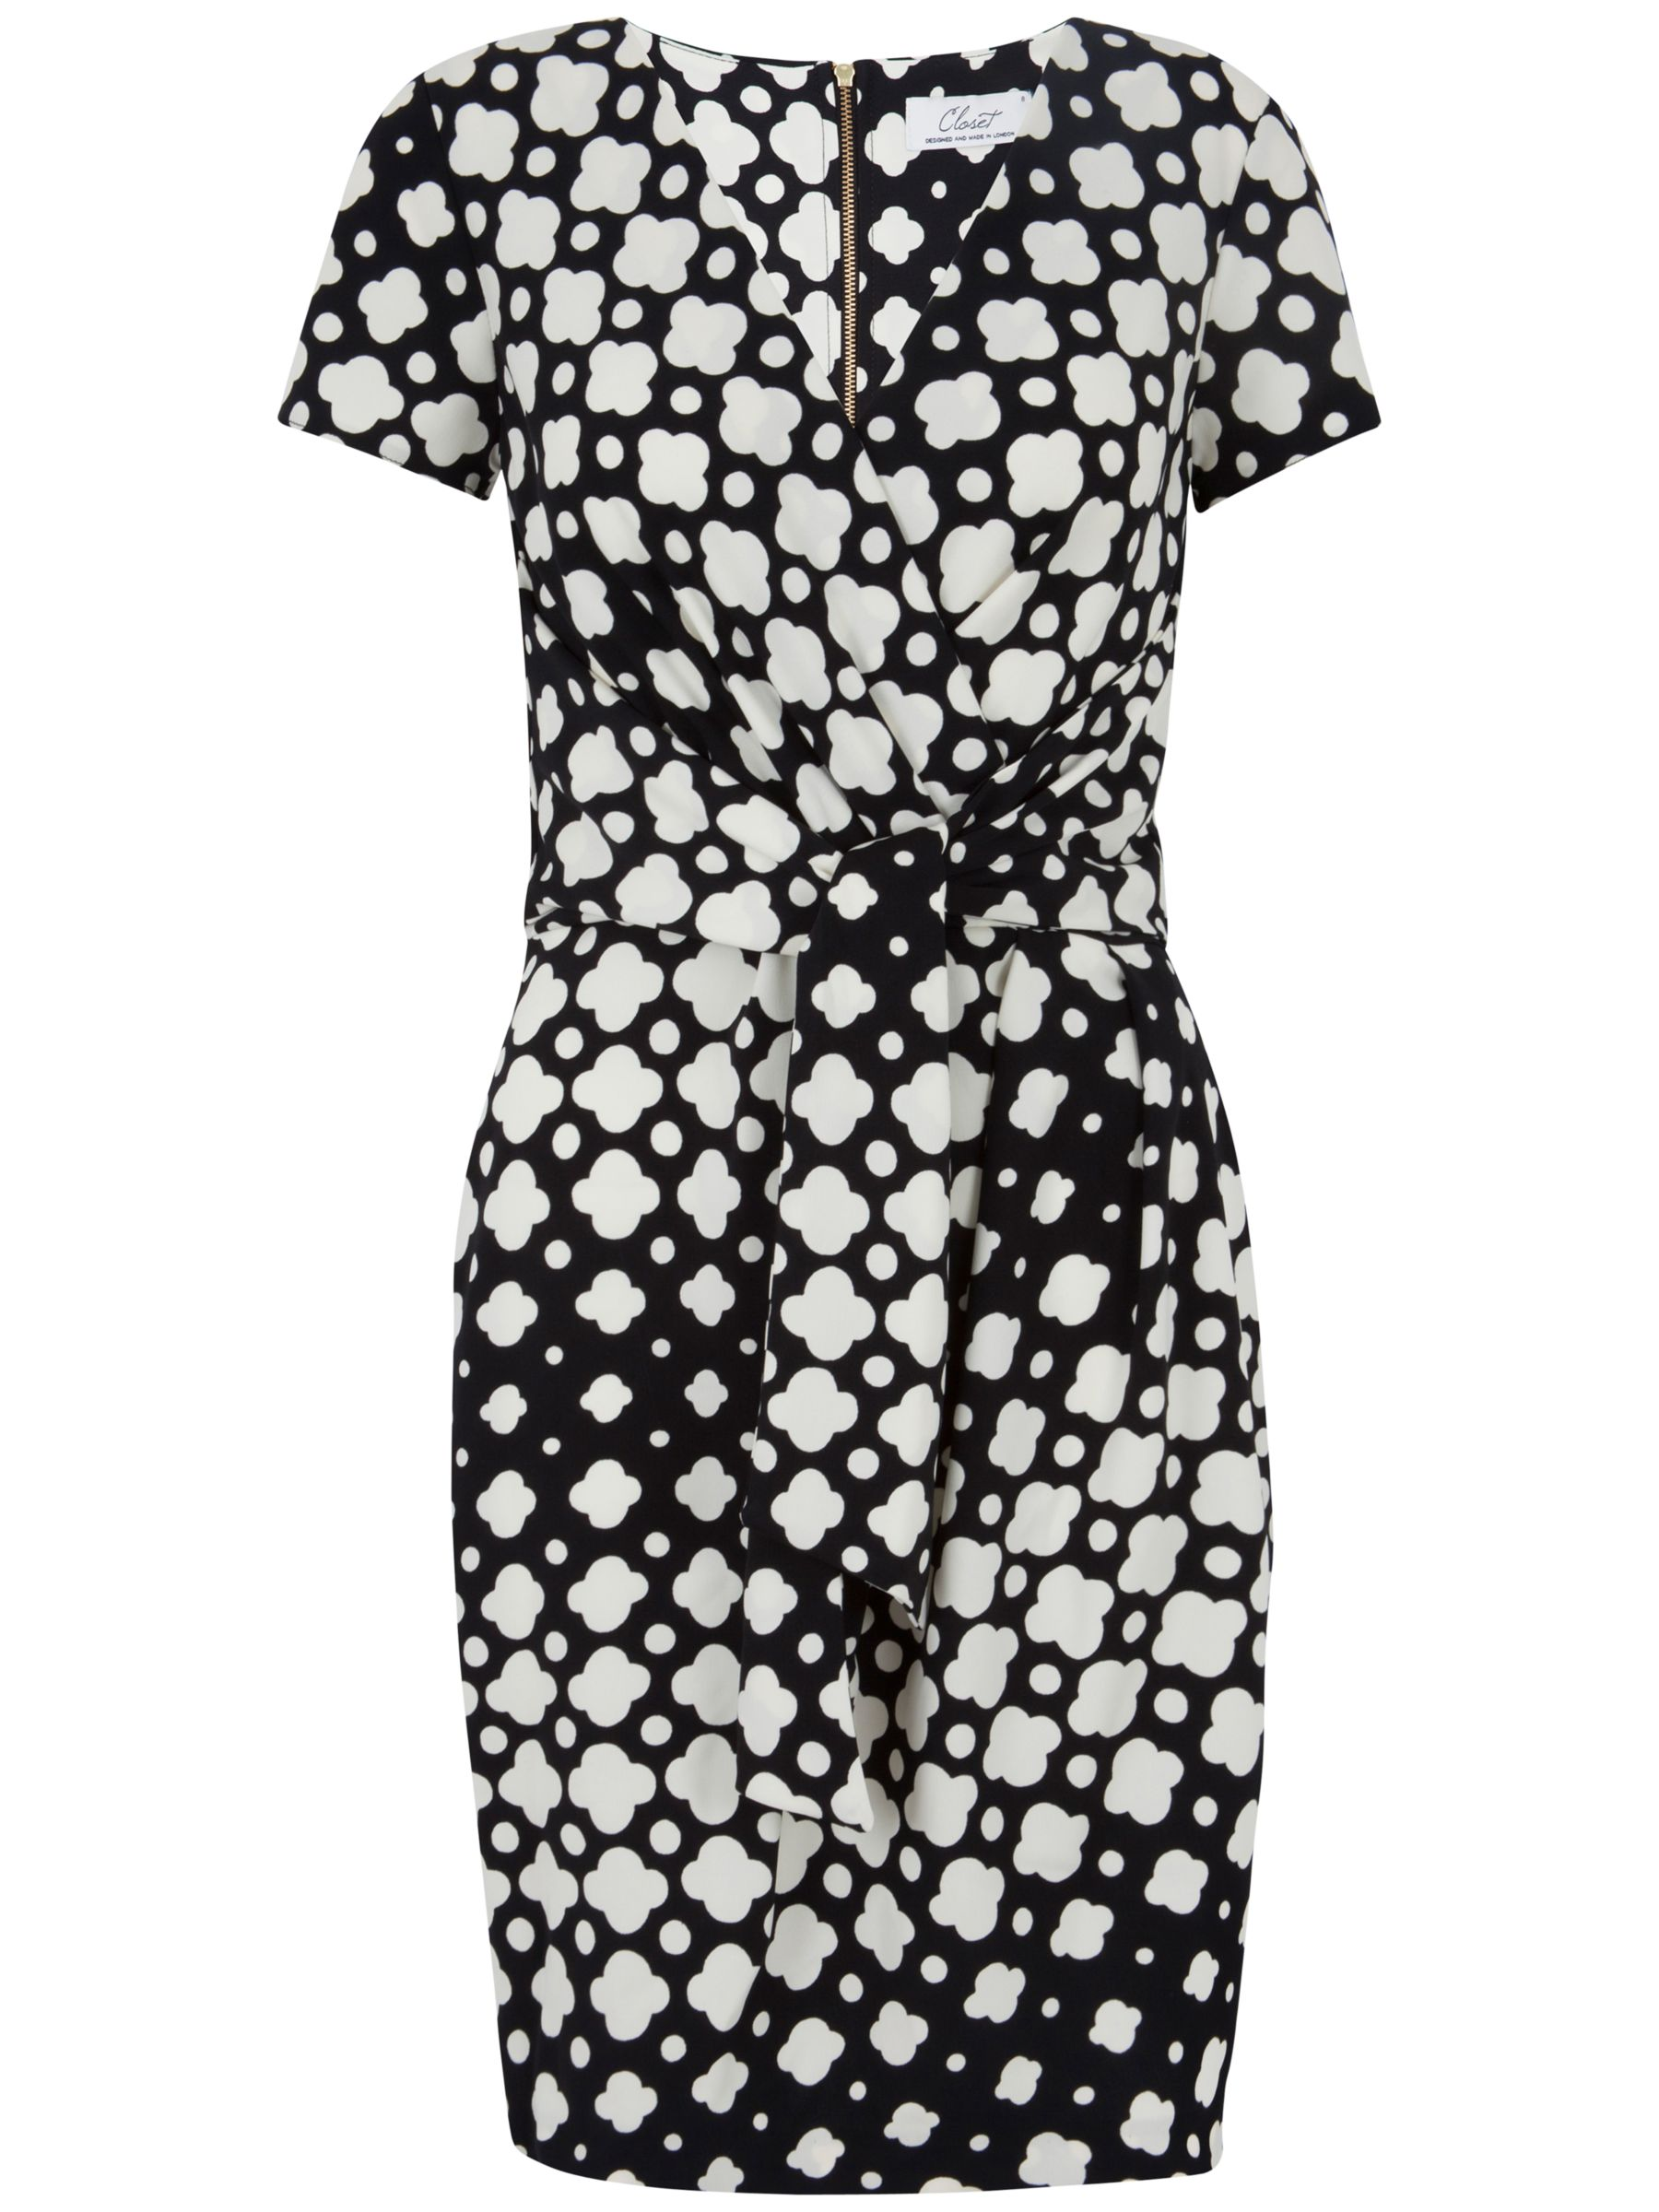 closet cloud print wrap tie front dress black and white, closet, cloud, print, wrap, tie, front, dress, black, white, 16 12 14 10 8, clearance, womenswear offers, womens dresses offers, women, inactive womenswear, new reductions, womens dresses, special offers, 1693505